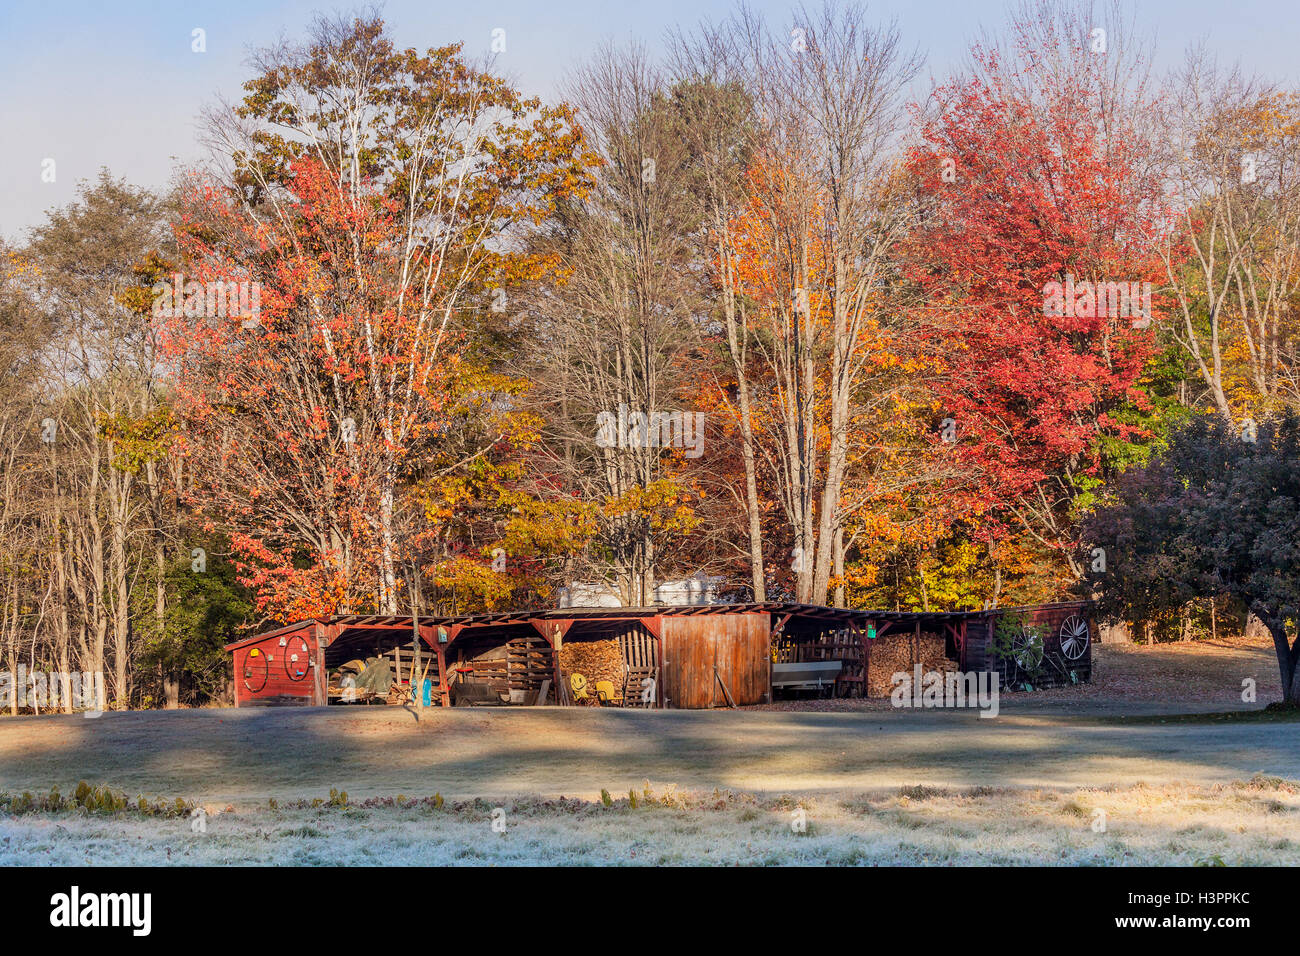 Scenic landscape of a barn filled with farm items and winter heating firewood, colorful Fall foliage and frost on - Stock Image